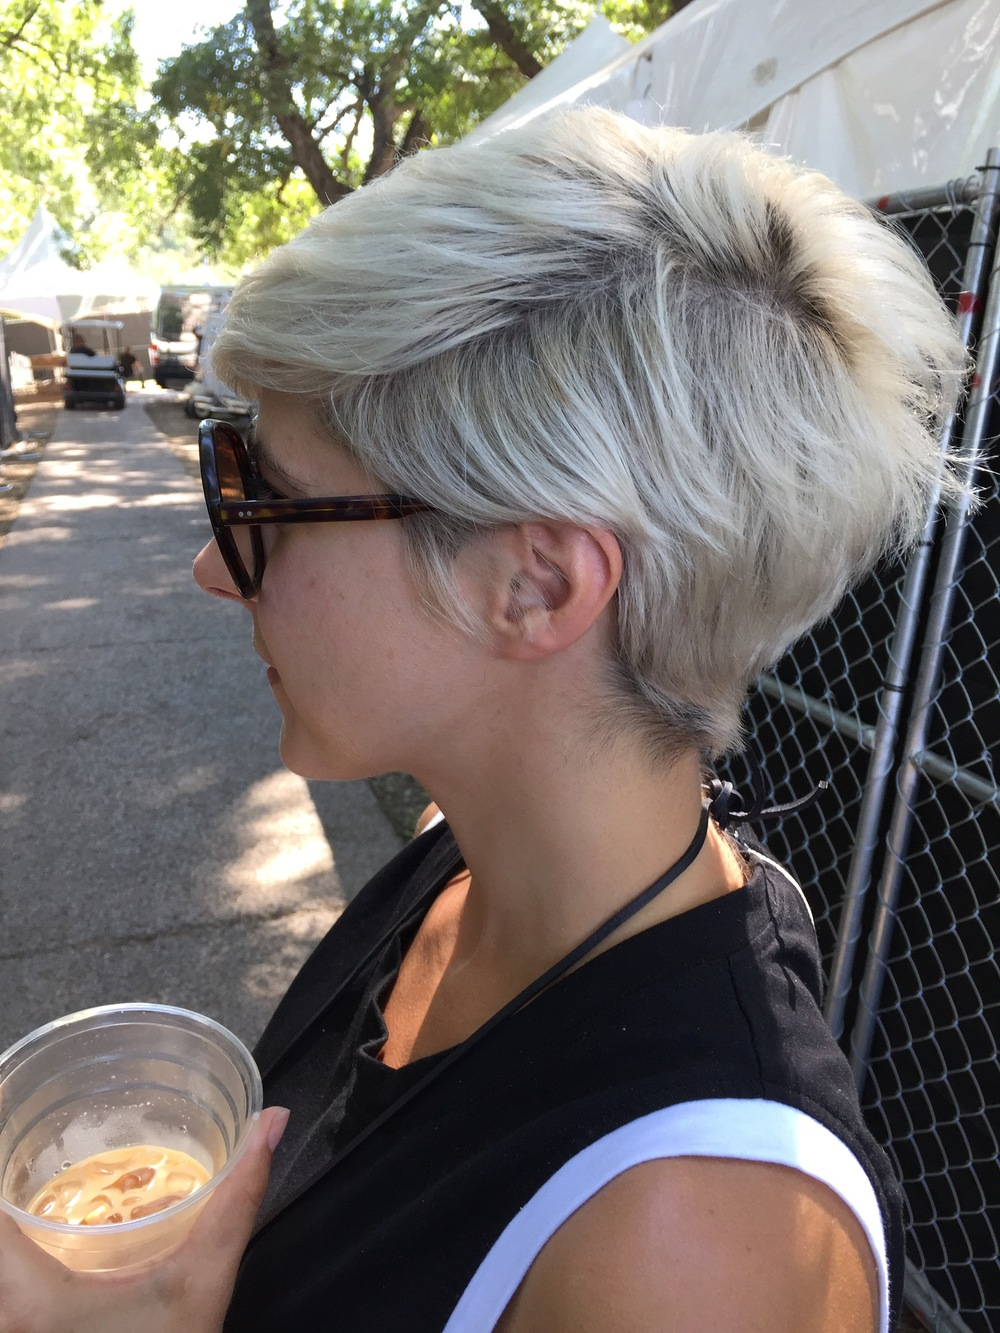 Love her cute cut and hair color.